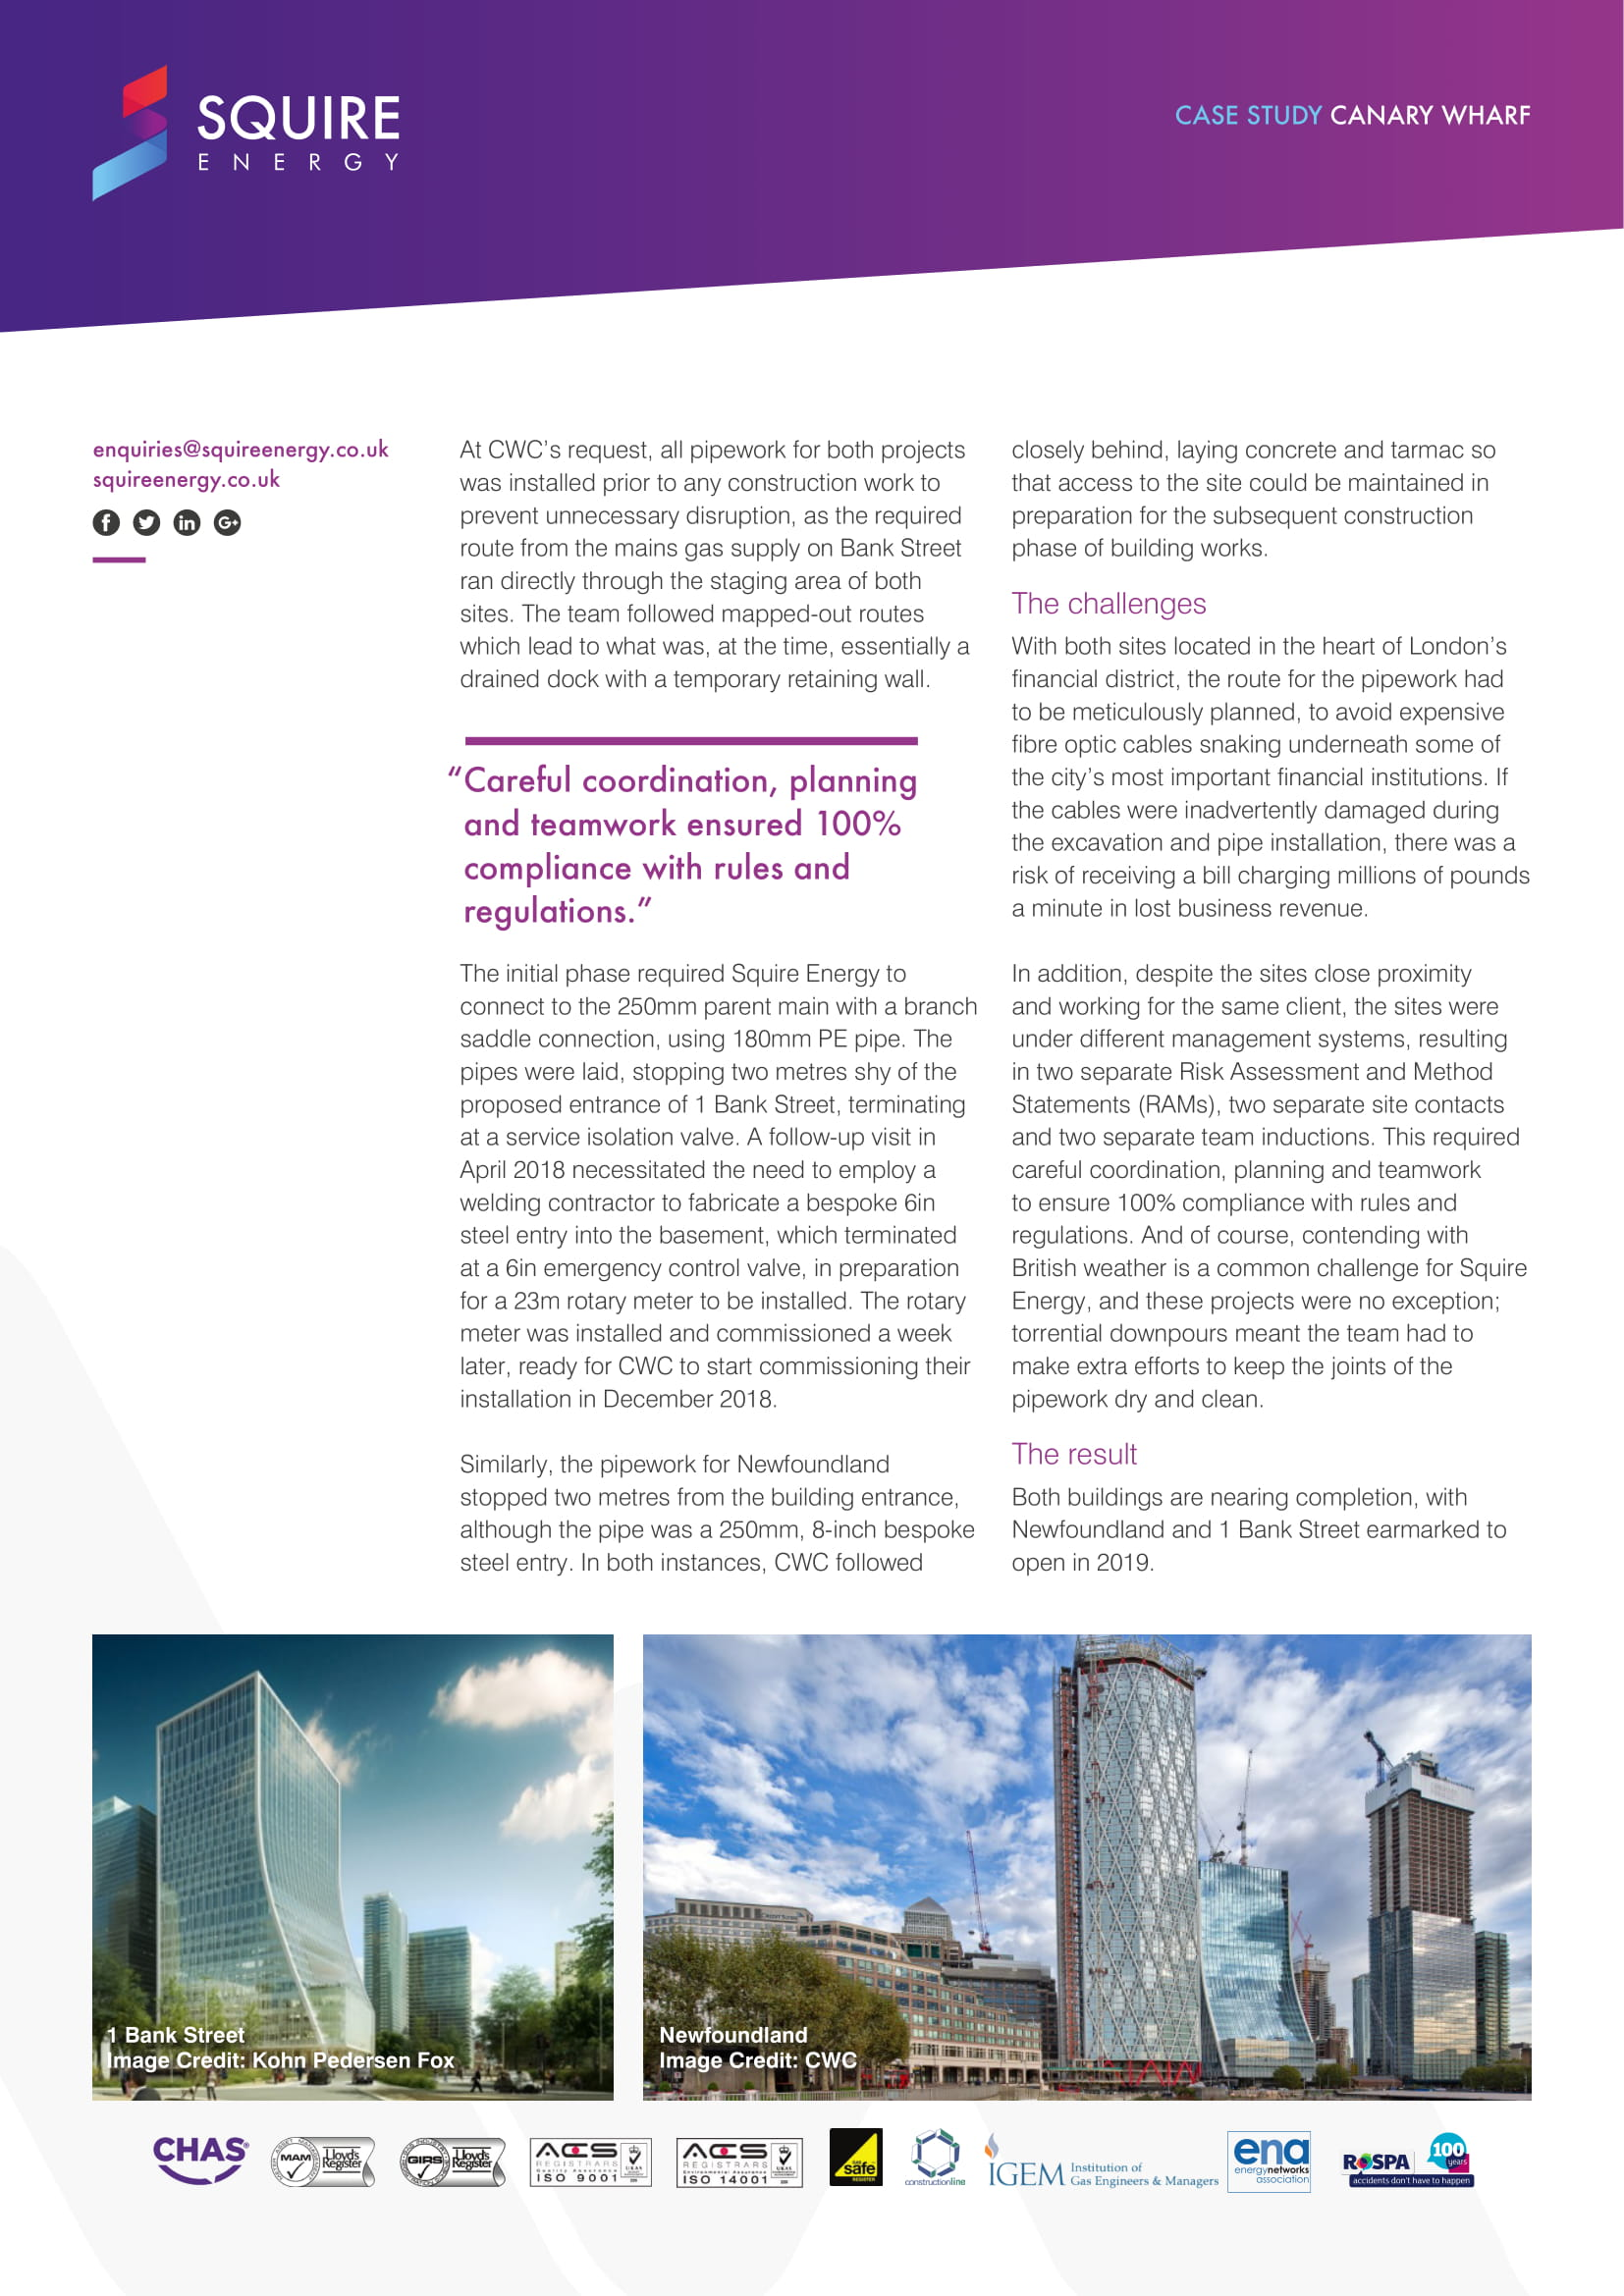 canary wharf case study page 2